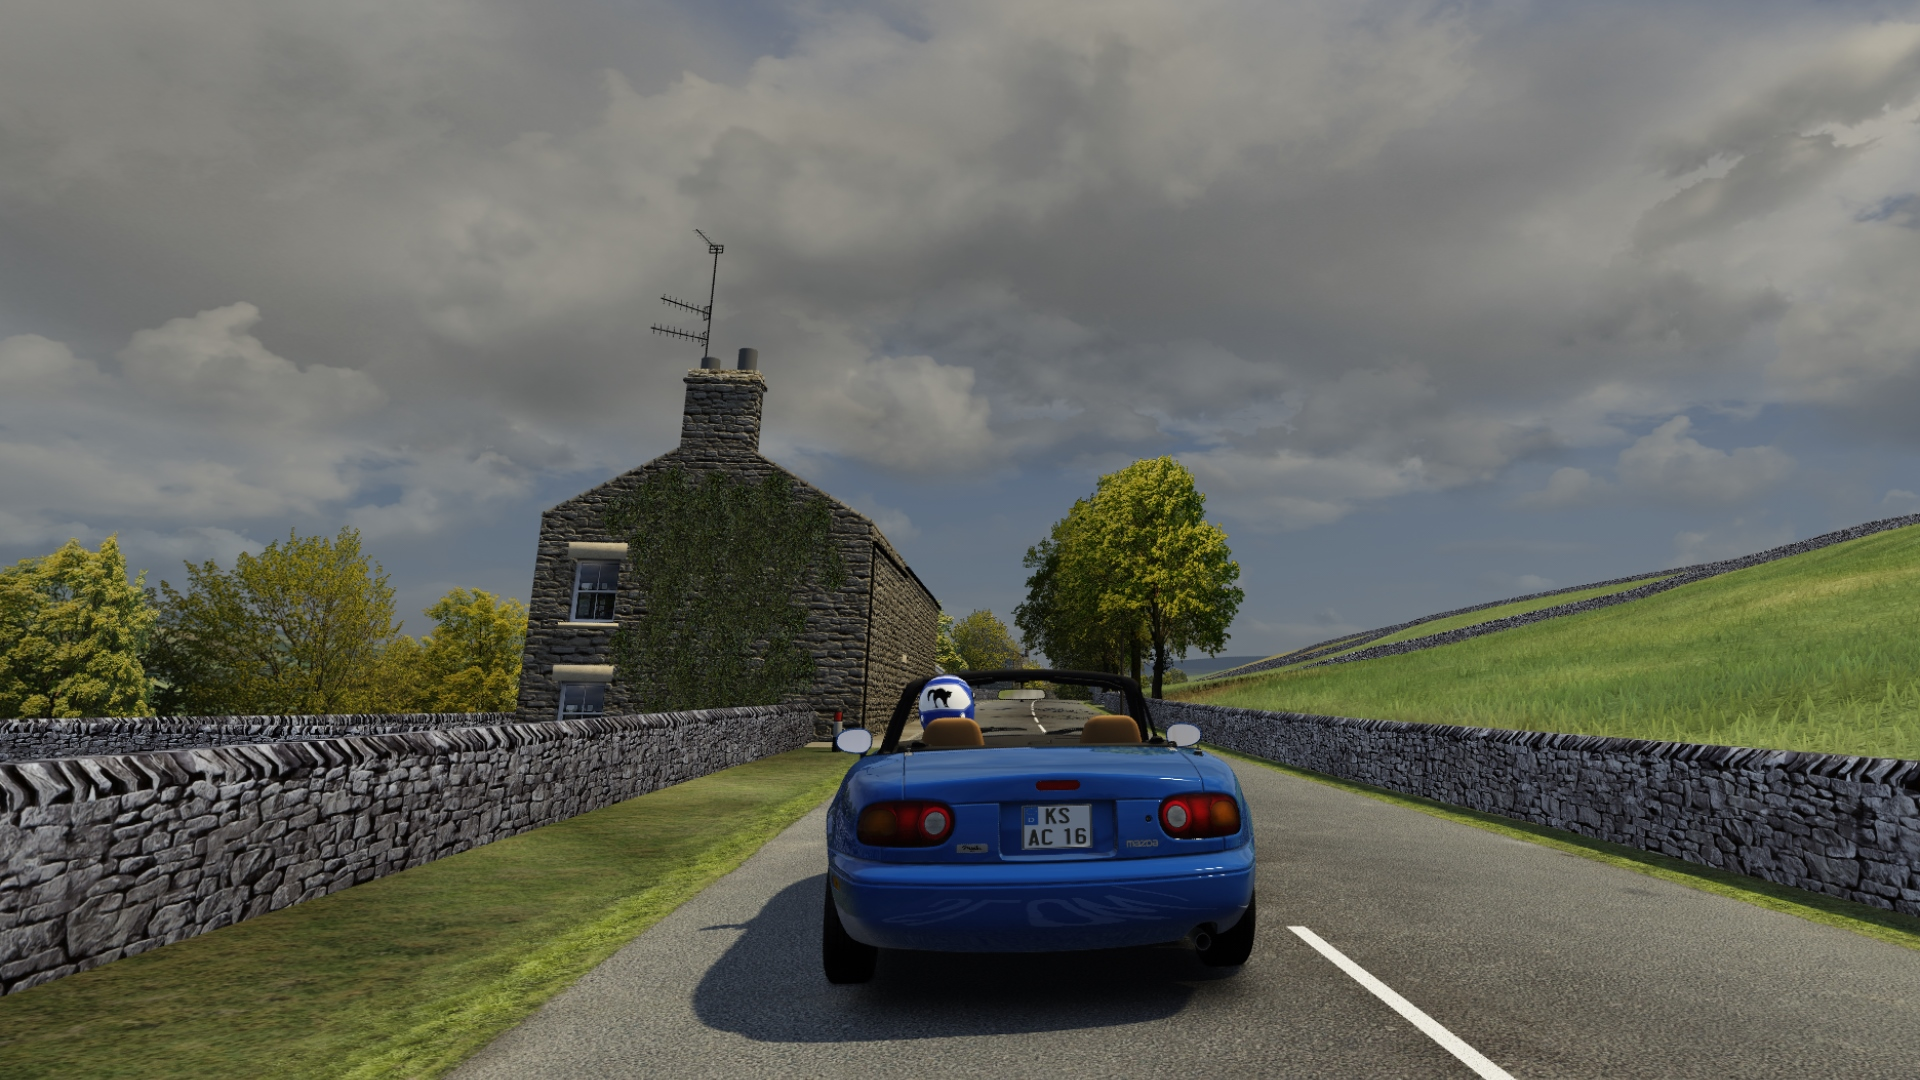 Screenshot_ks_mazda_miata_highforce_6-1-120-10-28-6.jpg